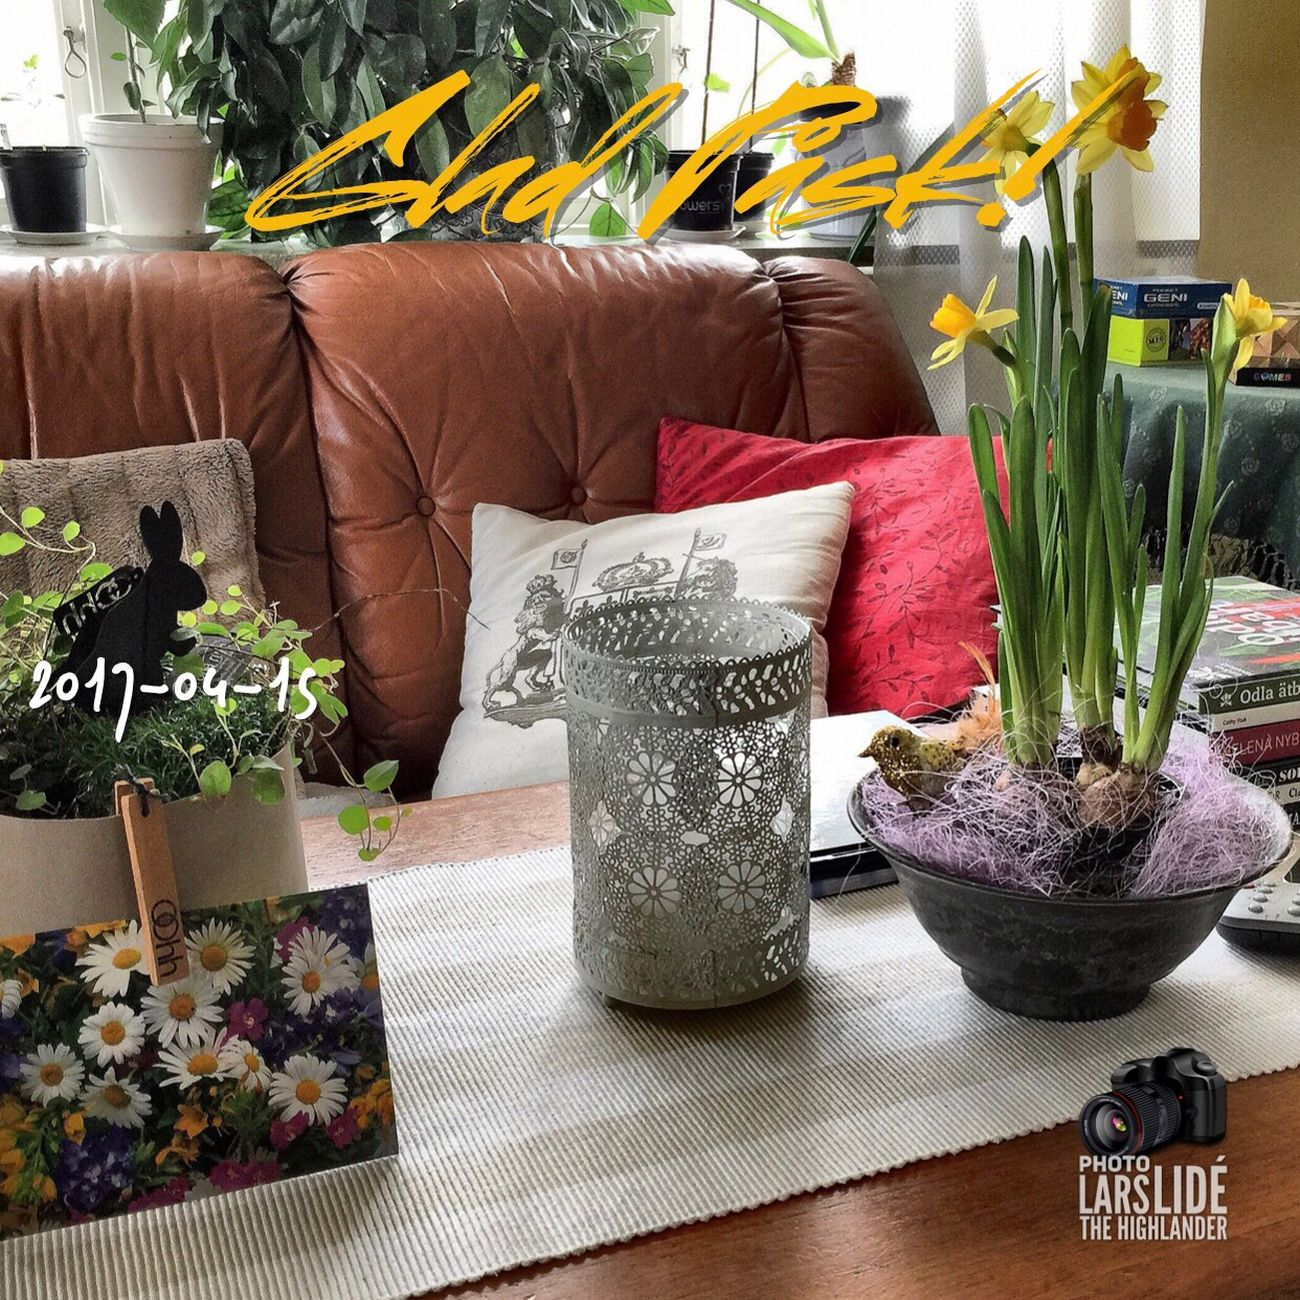 Flower Indoors  Living Room Home Showcase Interior No People Potted Plant Home Interior Day Happy Easter!